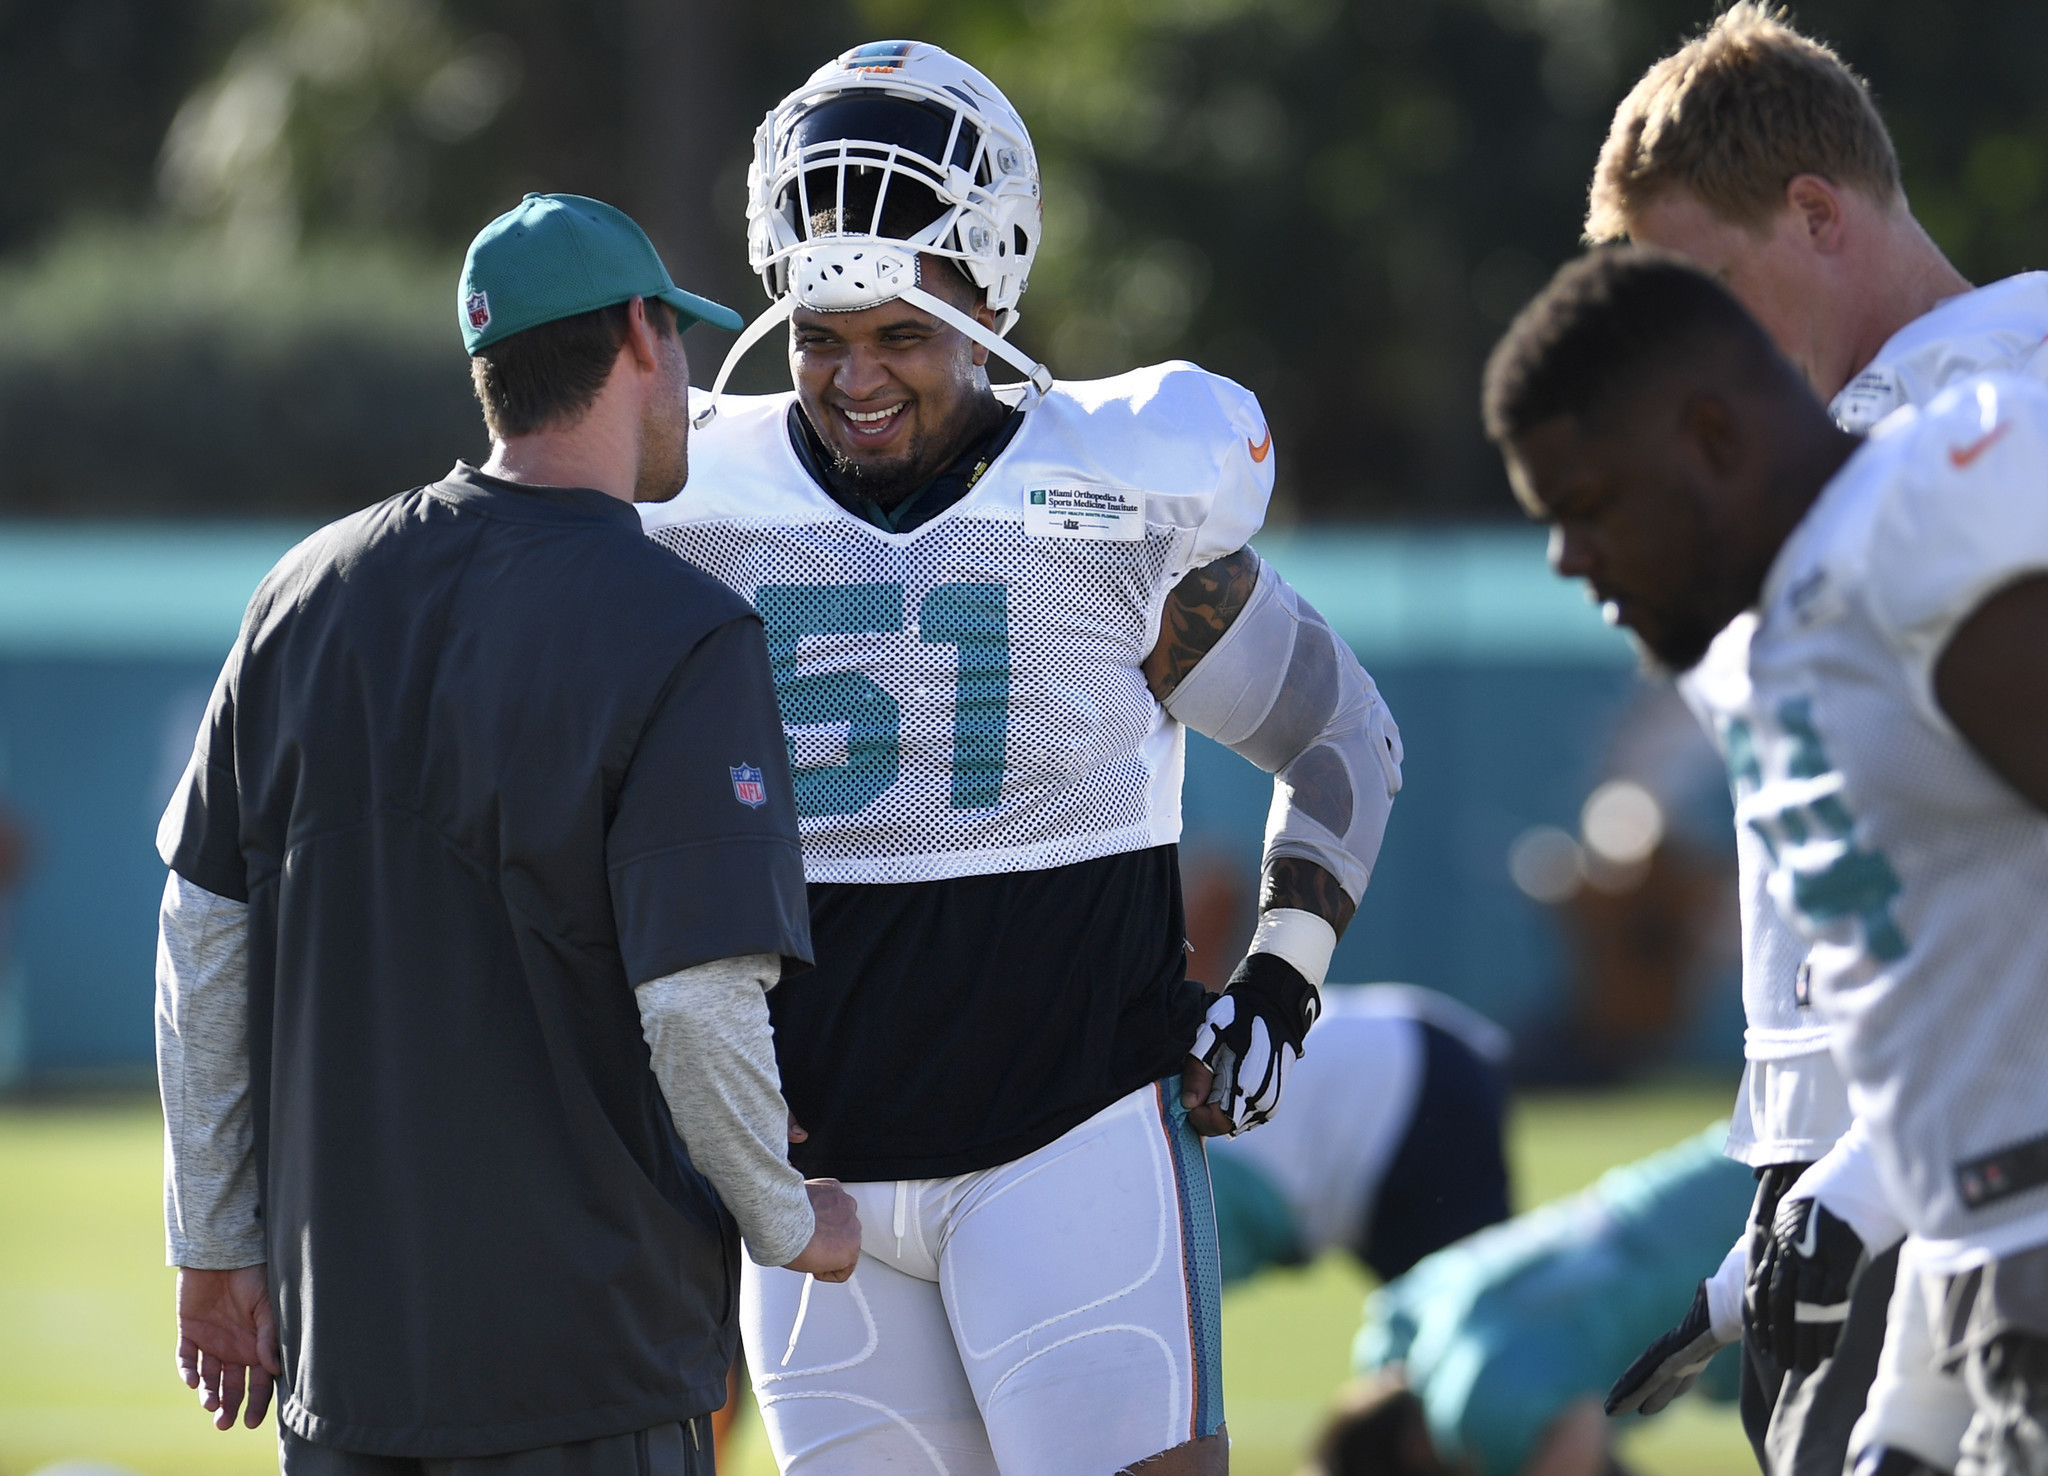 Mike Pouncey practices against Eagles Dolphins preparing center